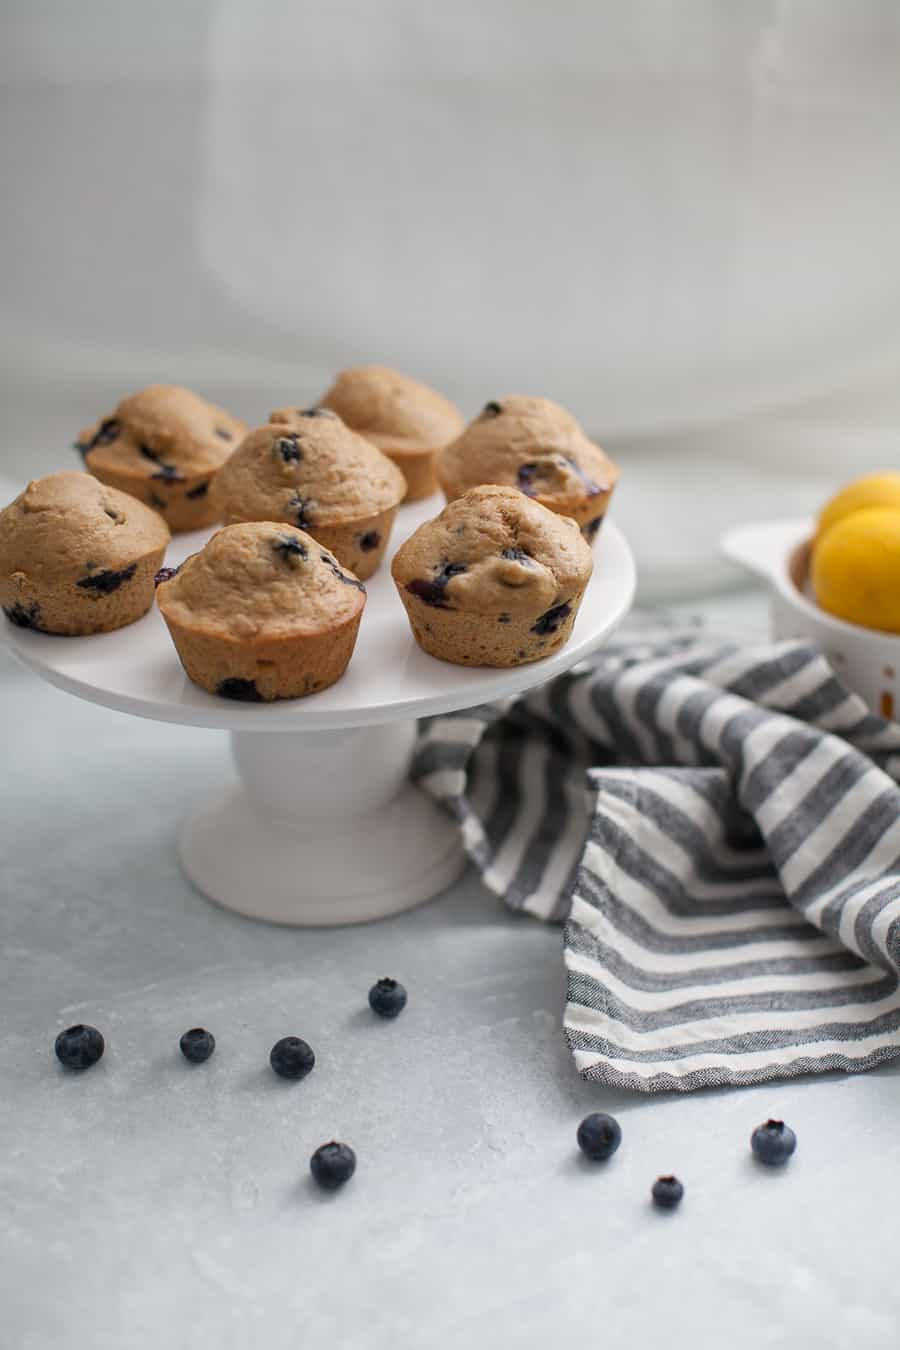 Healthy Lemon Blueberry Muffins are the perfect thing to kick off the school year. These muffins can easily be made ahead of time for the week and are perfect for serving to your kids. They'll love the sweet taste of the blueberries and you'll love that they're refined sugar free and healthy for them!